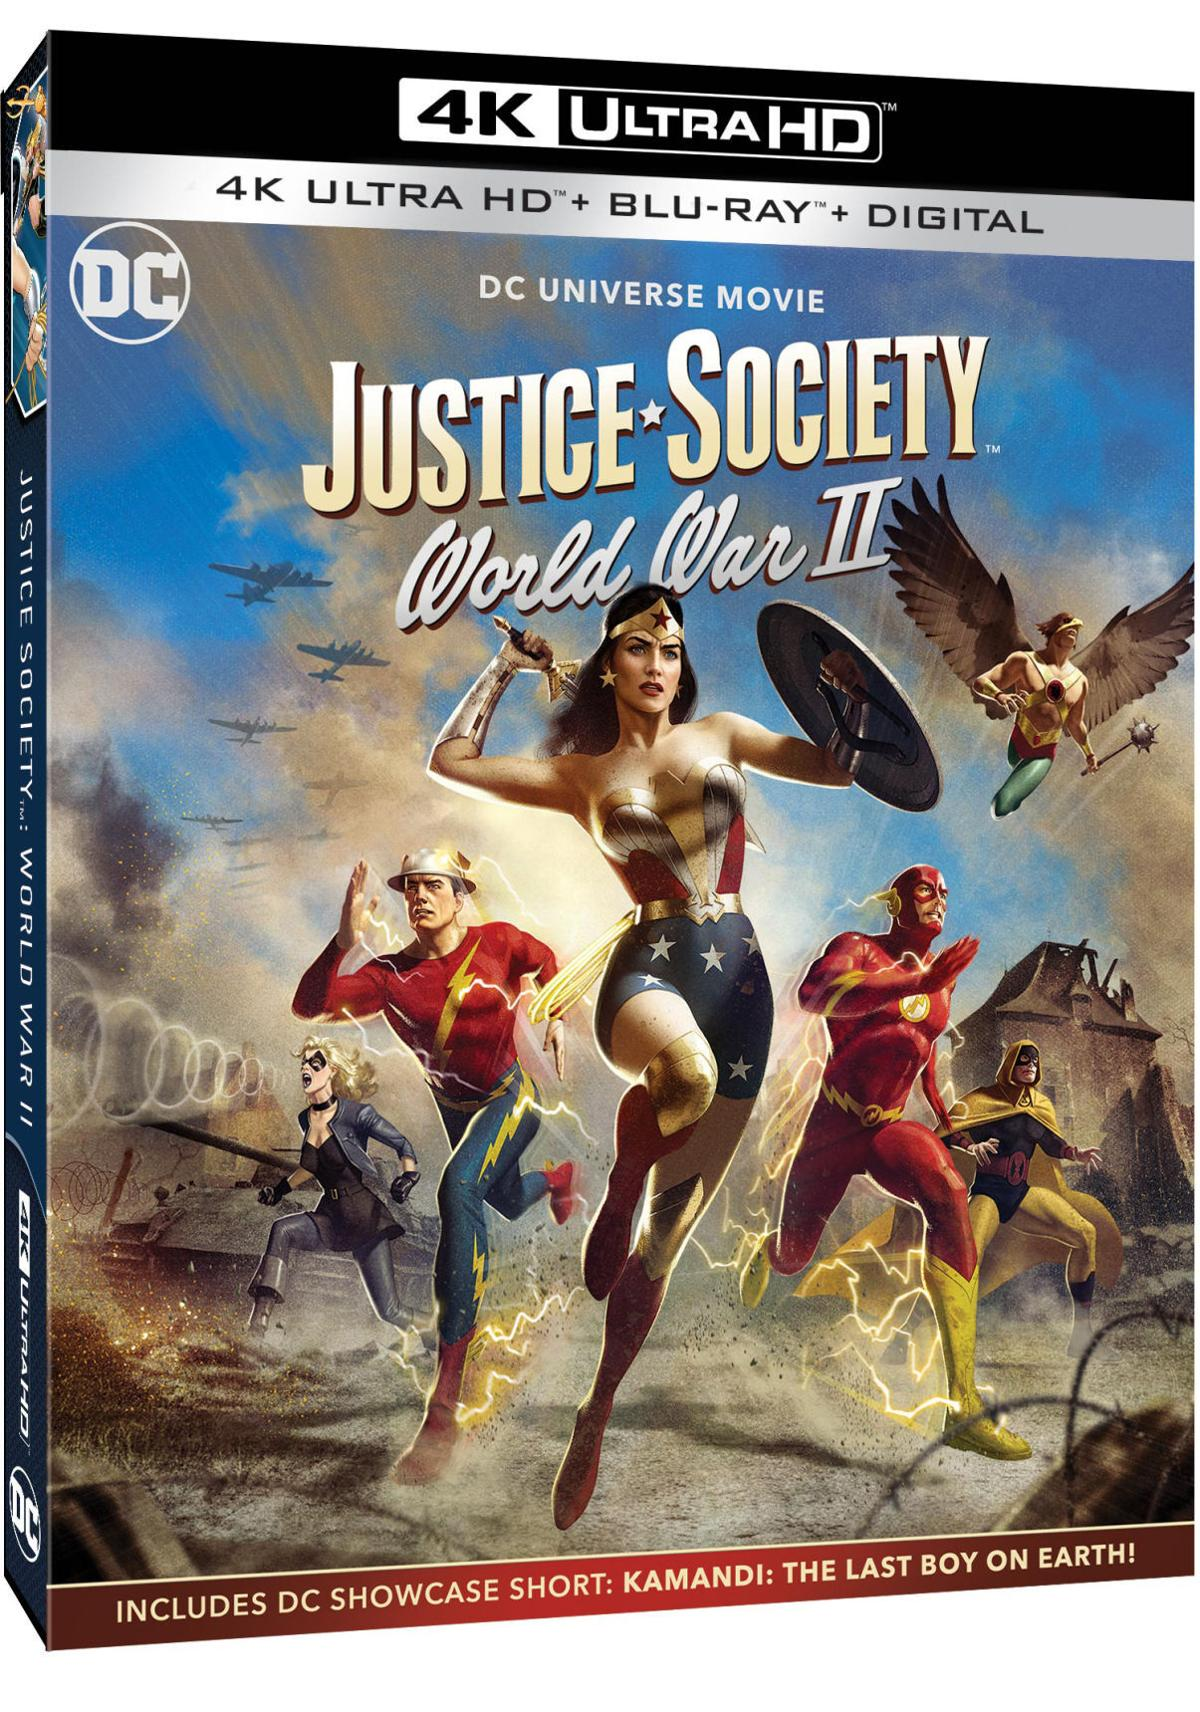 Justice Society Blu-Ray Cover.jpg